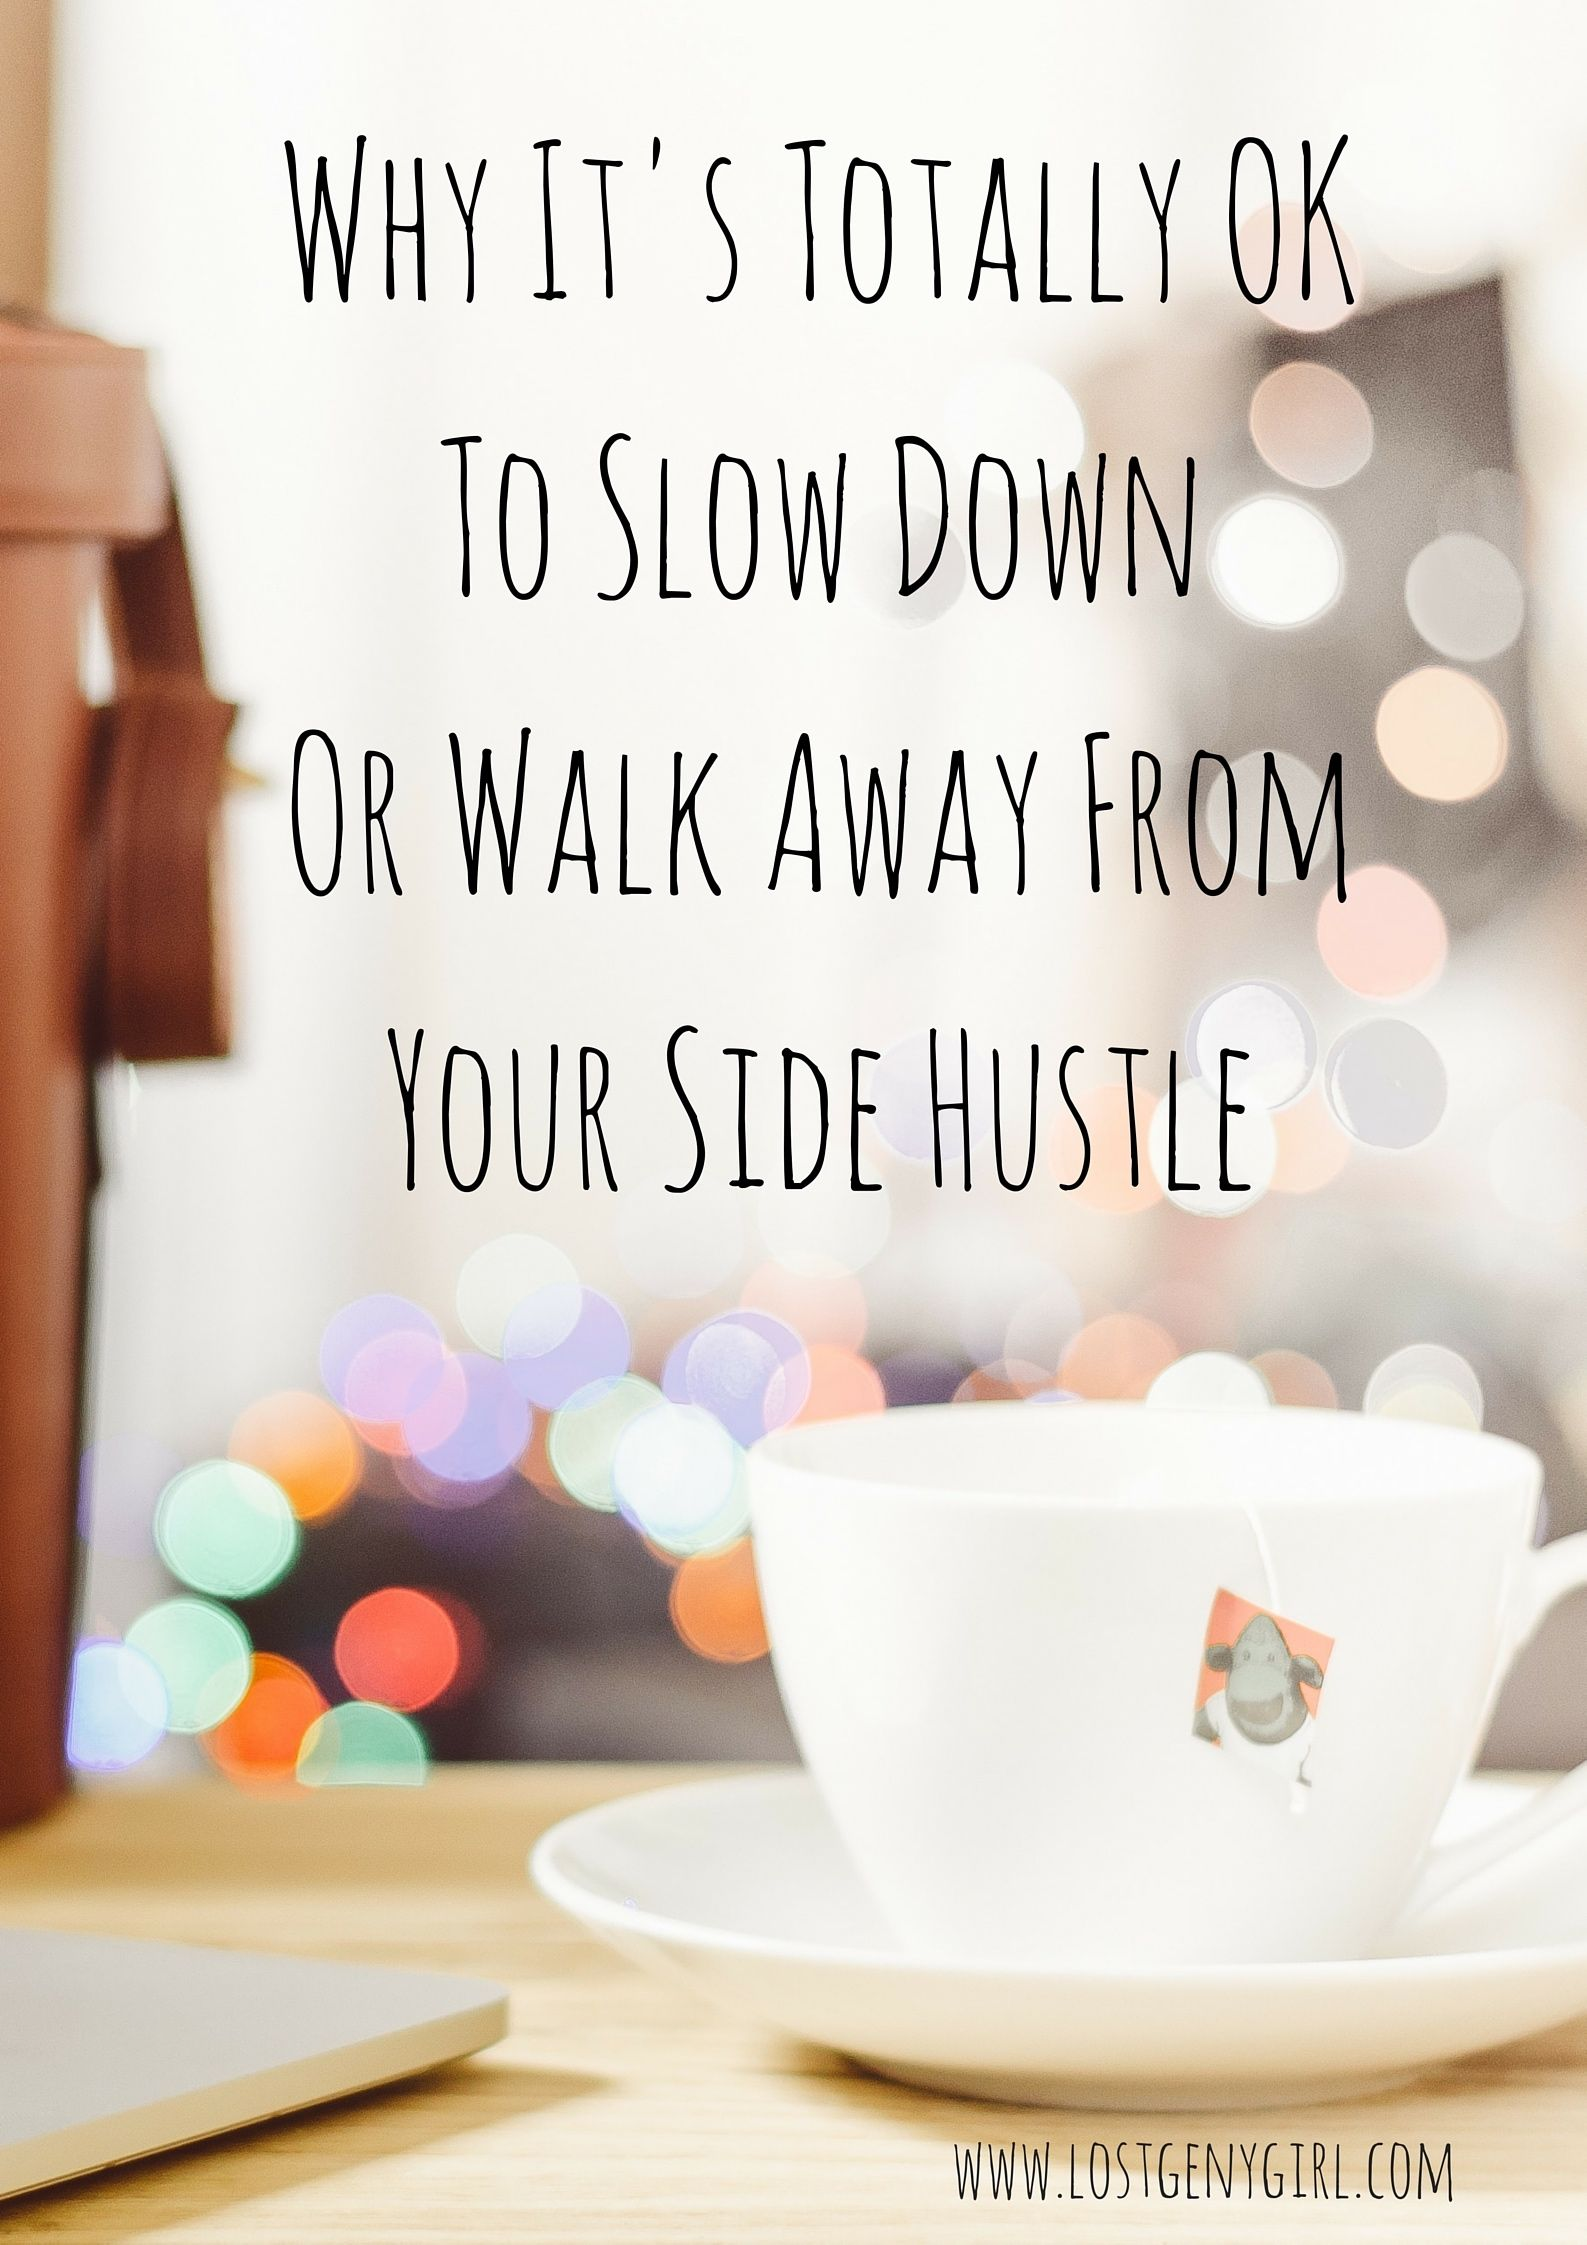 Why Itu0027s Totally Ok To Slow Down Or Walk Away From Your Side Hustle |  Www.lostgenygirl.com #millennials #career #entrepreneur